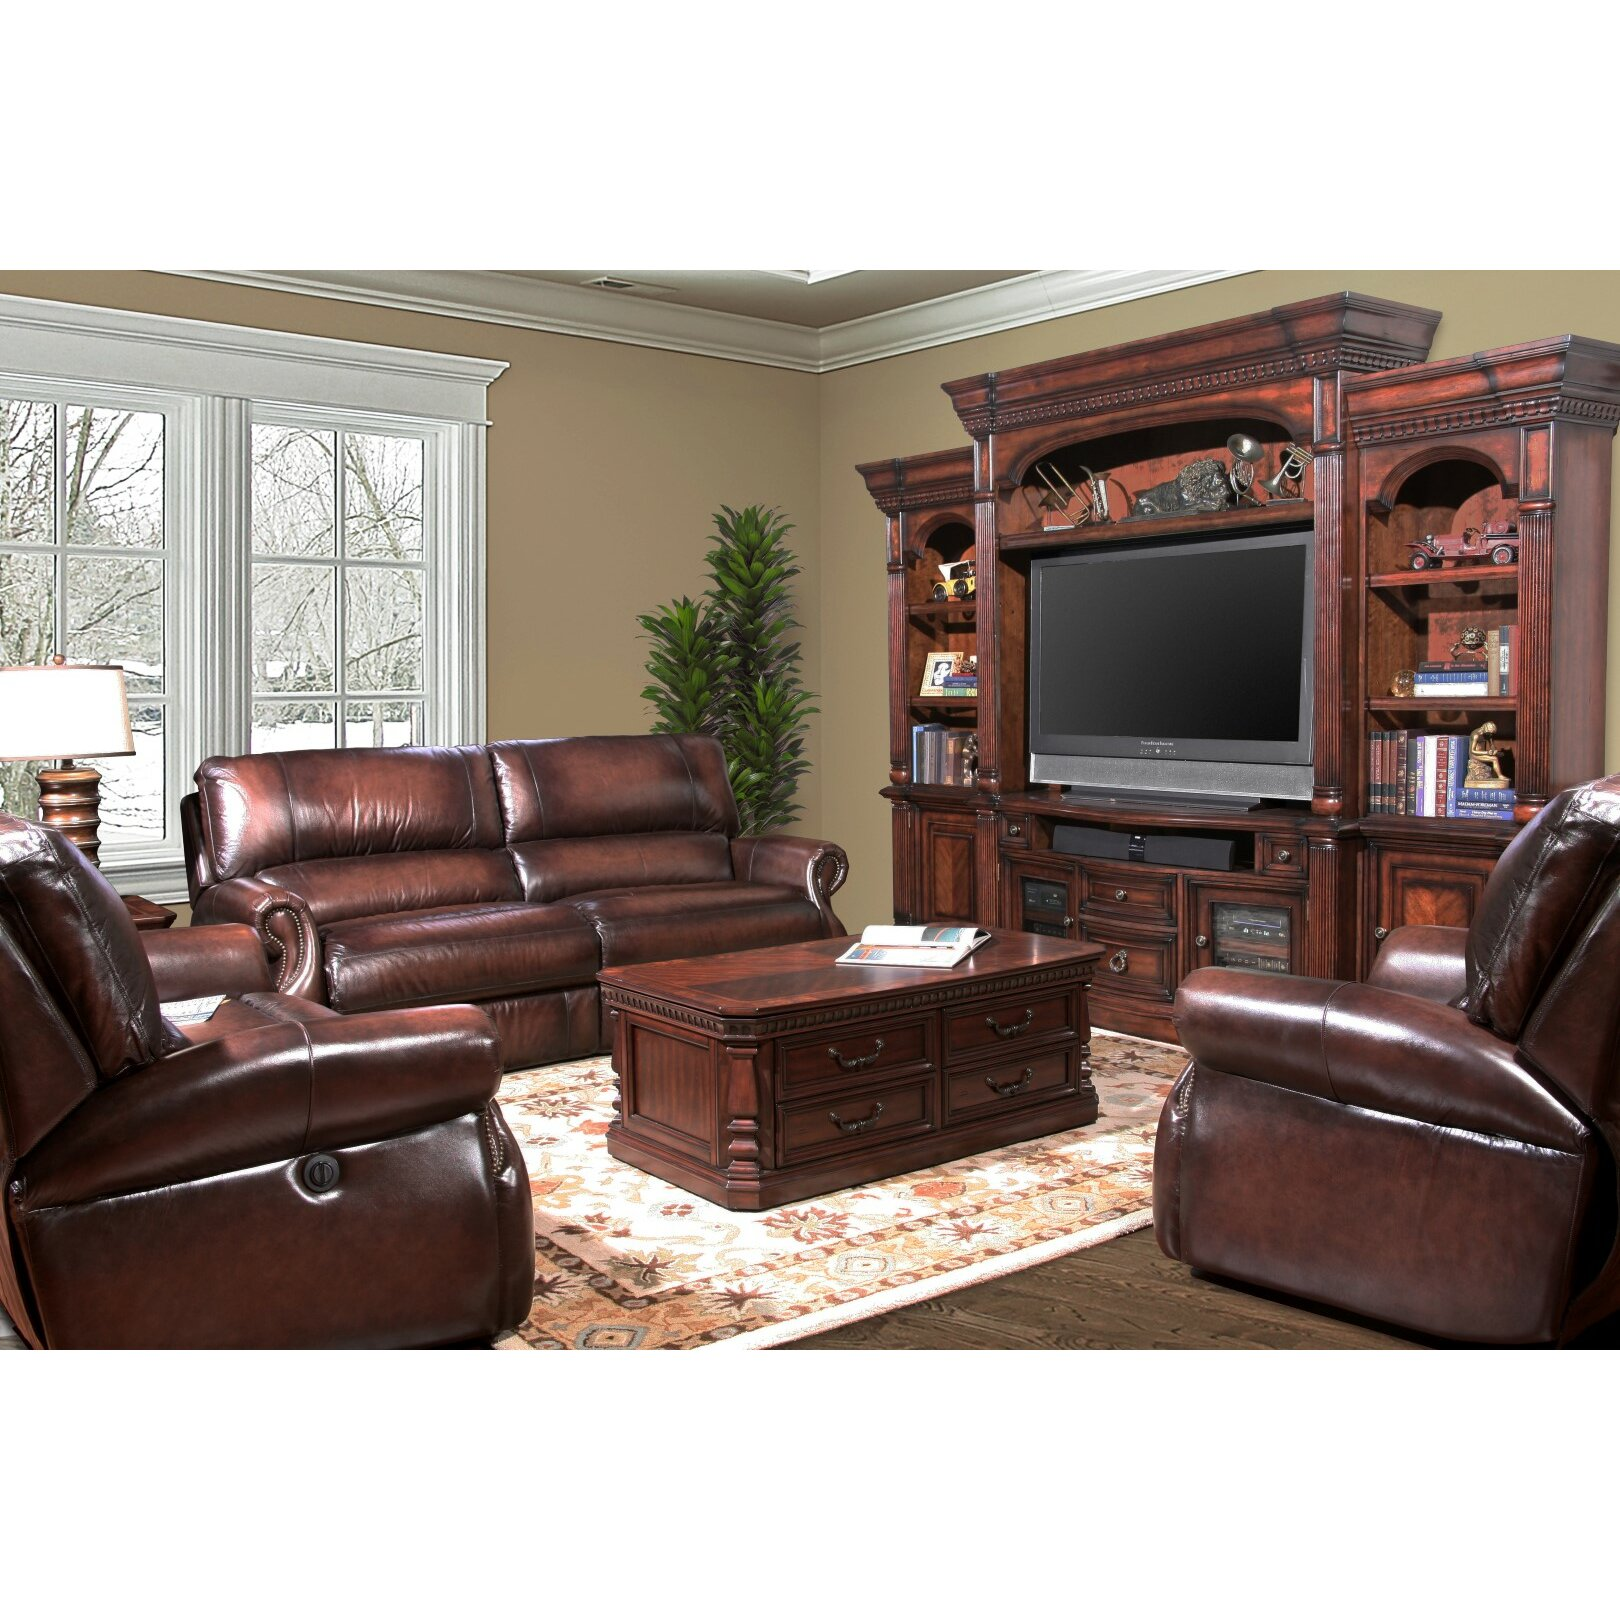 Leather Living Room Darby Home Co Hardcastle Leather Living Room Collection Reviews